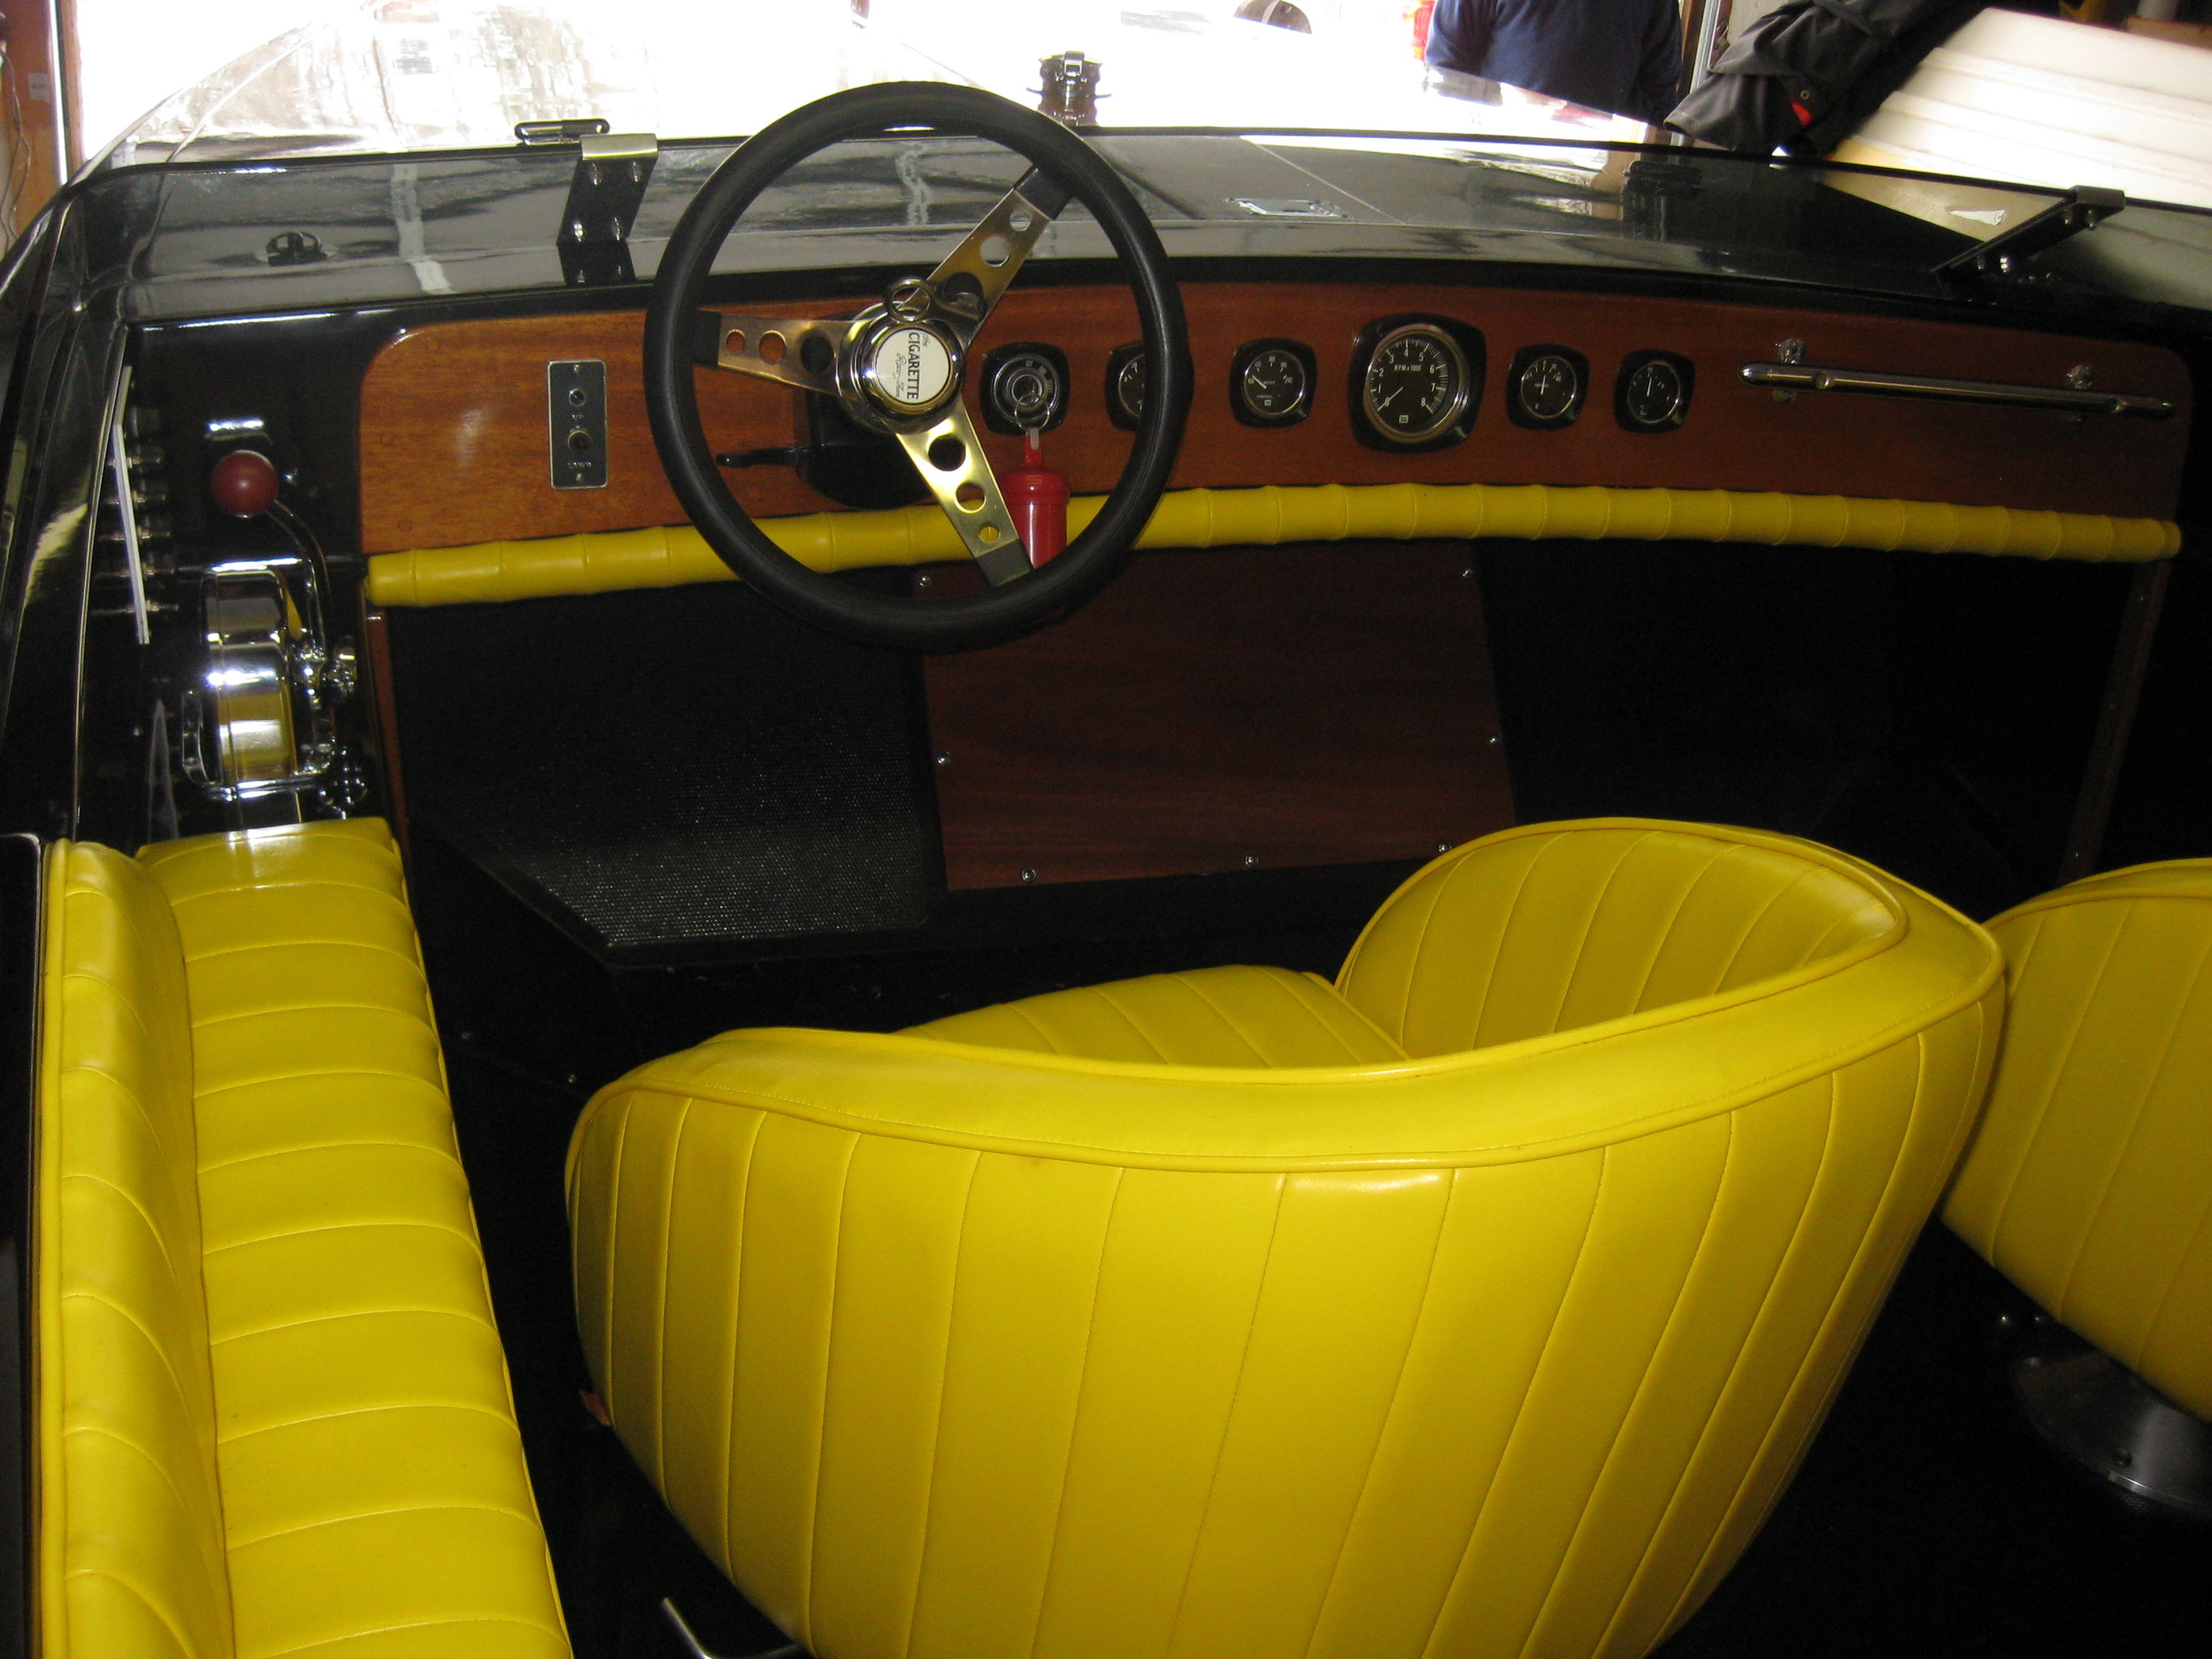 The interior is period correct and like the original with restored hardware, Stewart Warner gauges and a custom reproduction of the original windshield.